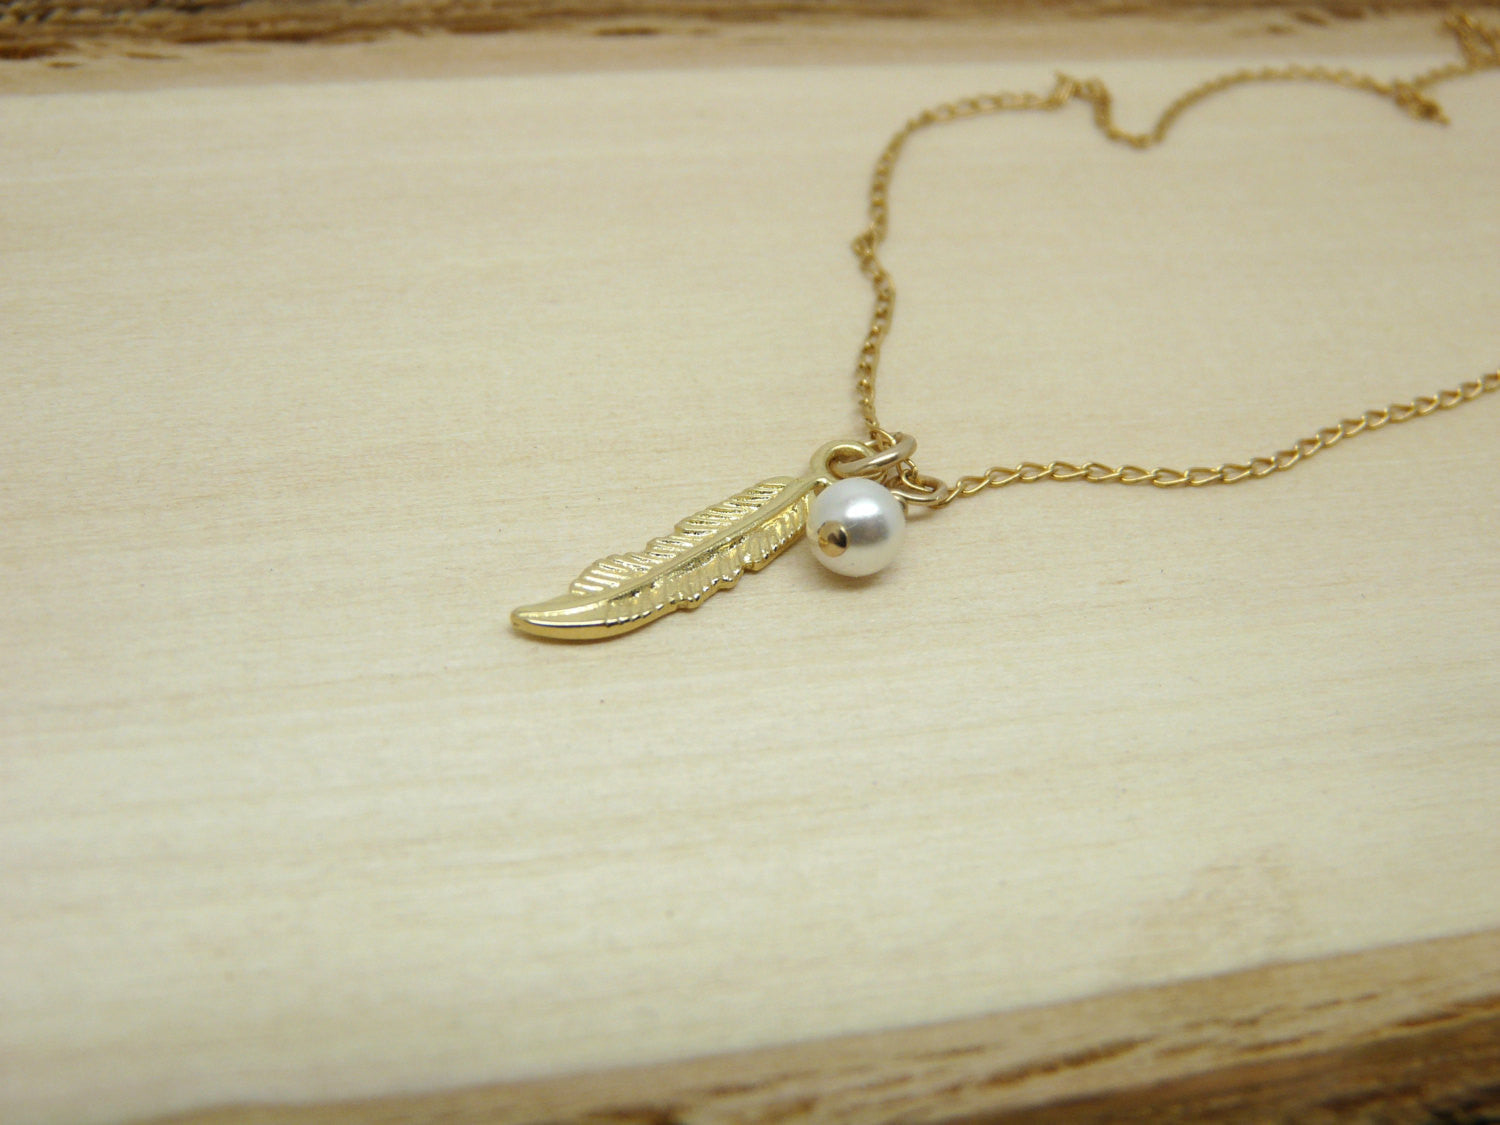 Feather necklace with Pearl - OpaLandJewelry